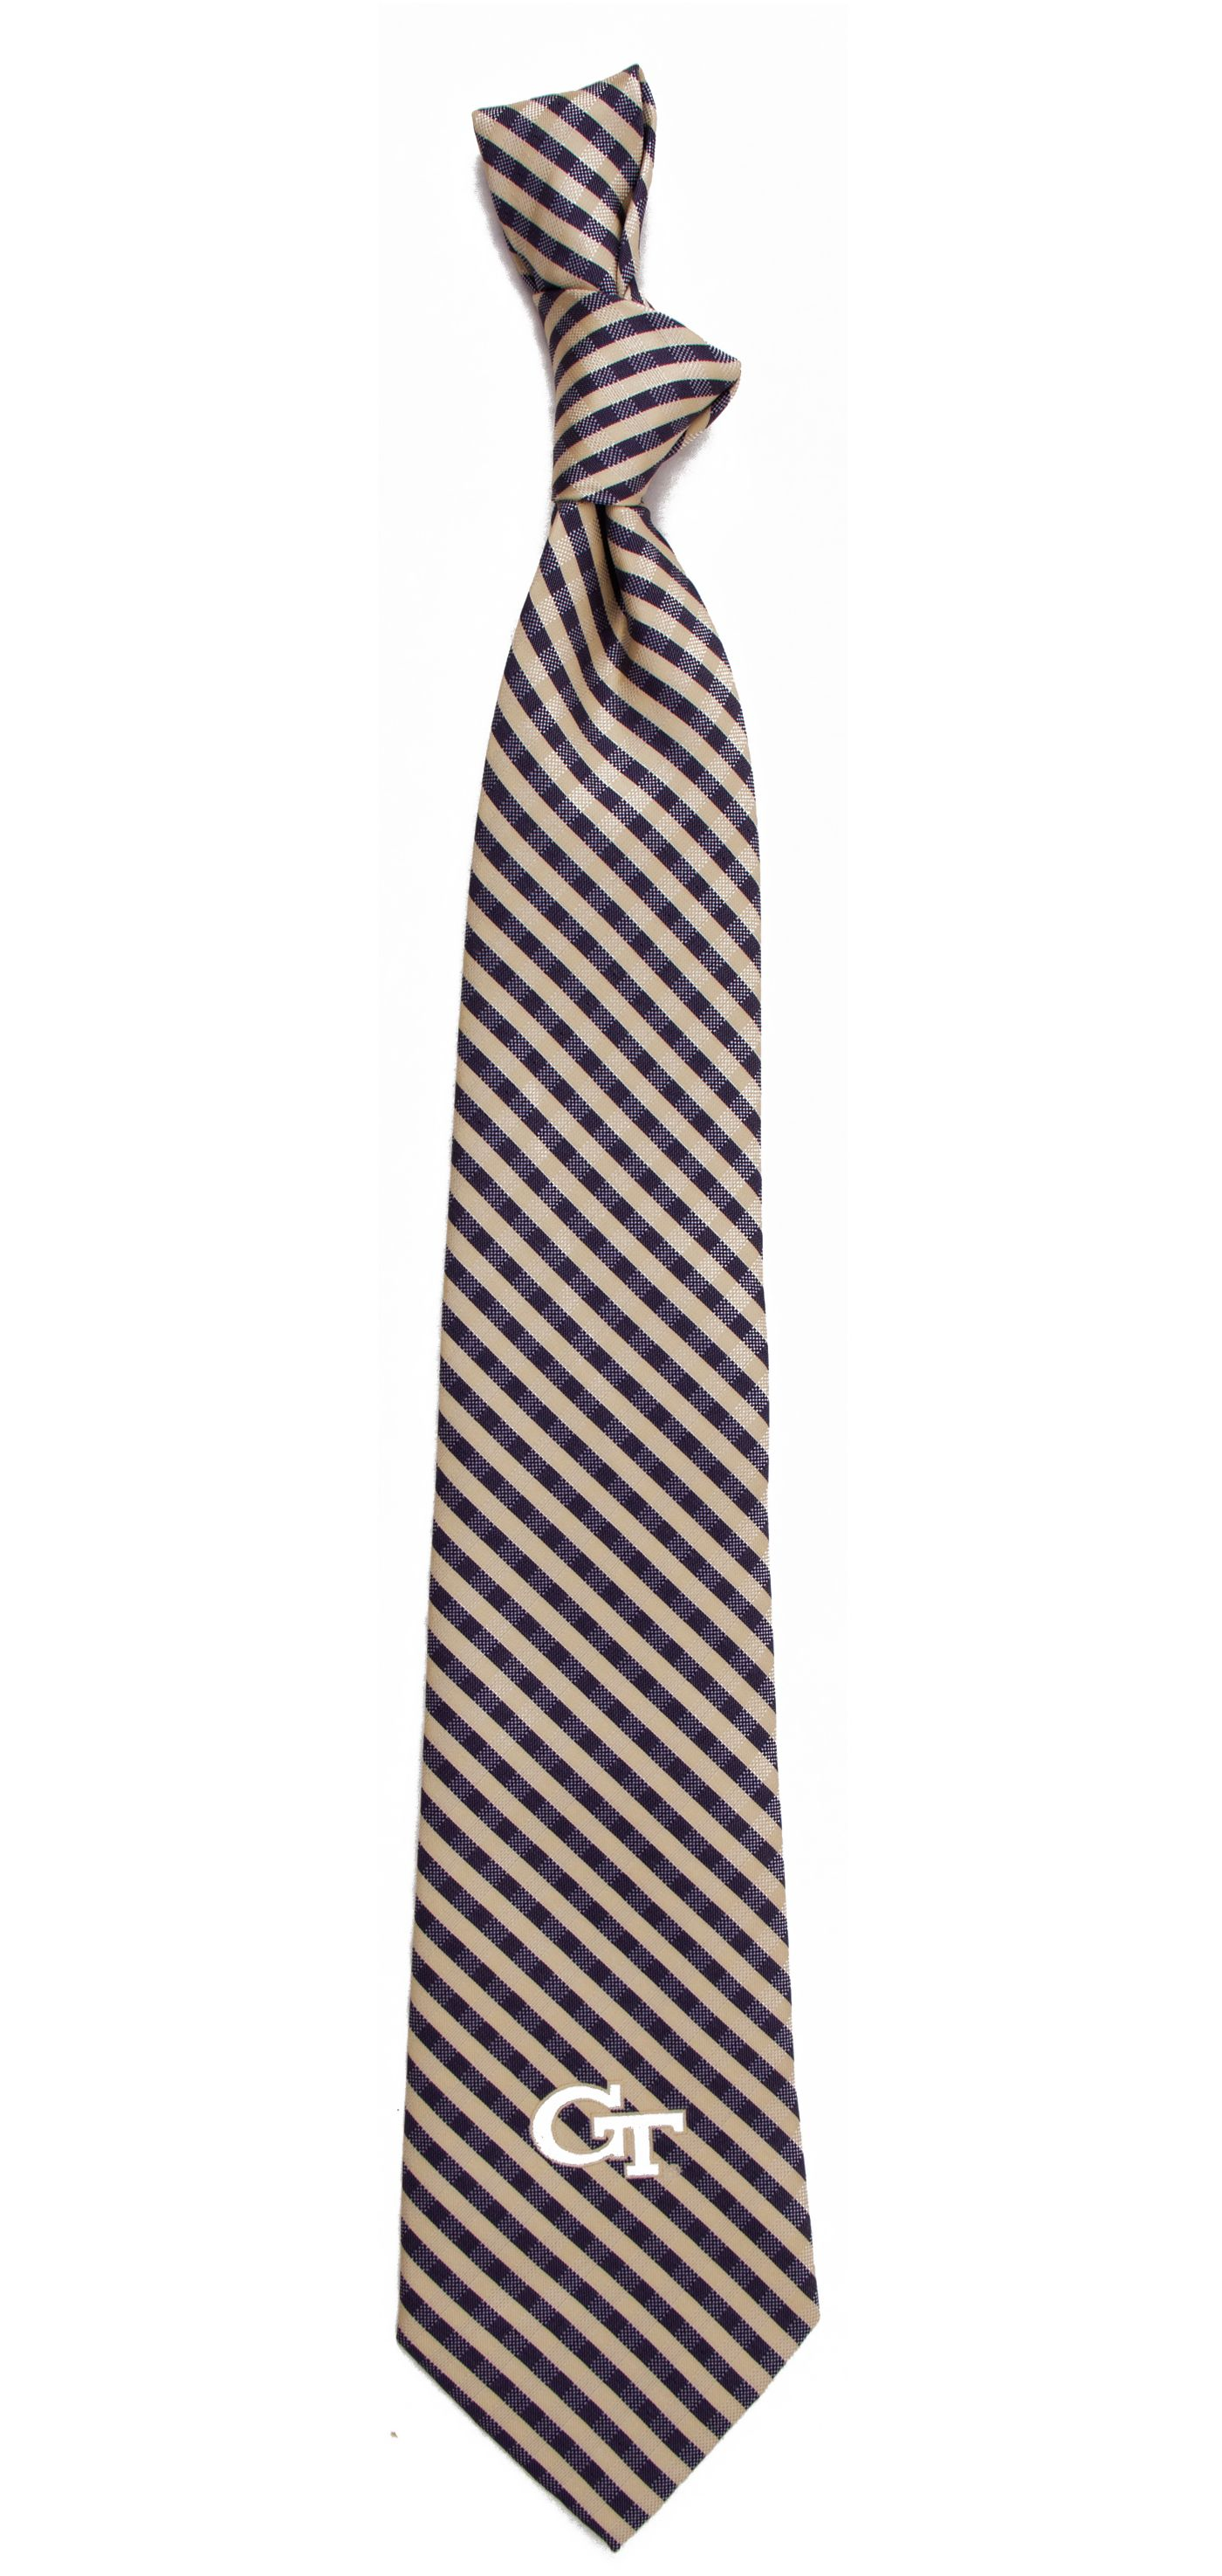 Eagles Wings Georgia Tech Yellow Jackets Gingham Necktie